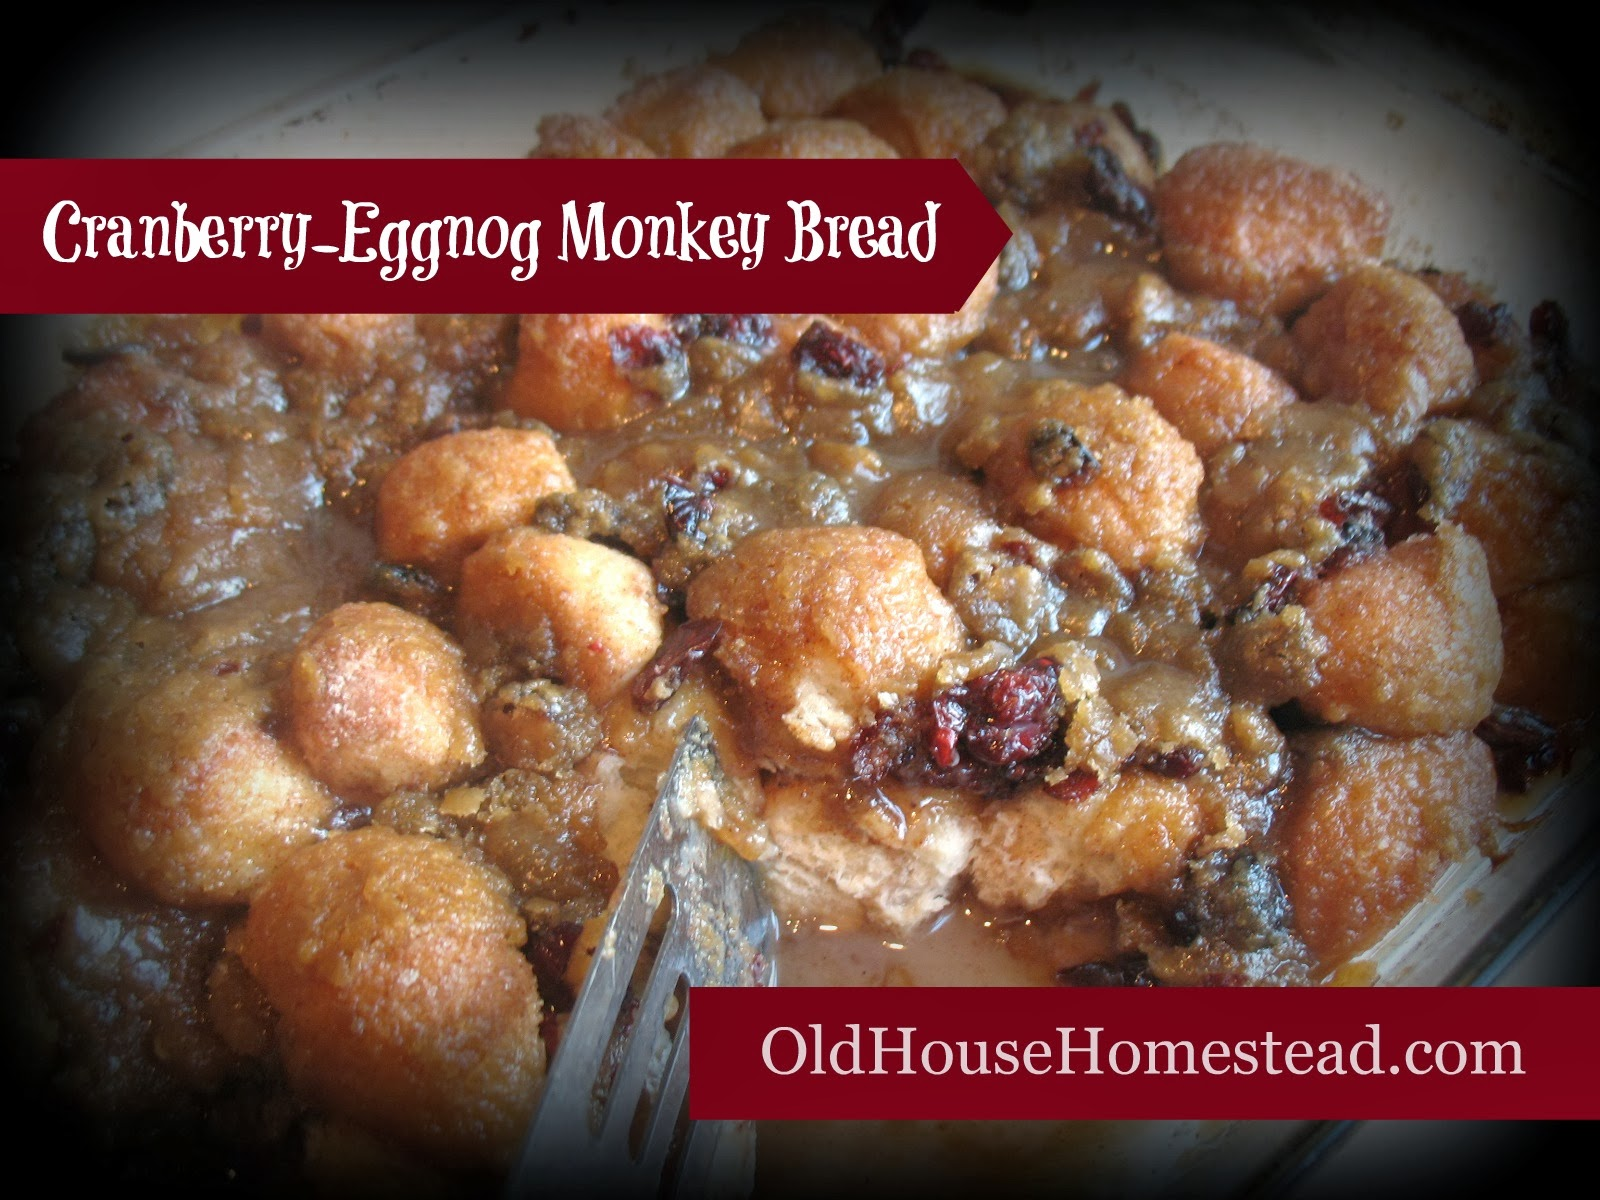 OLD HOUSE HOMESTEAD: Cranberry-Eggnog Monkey Bread